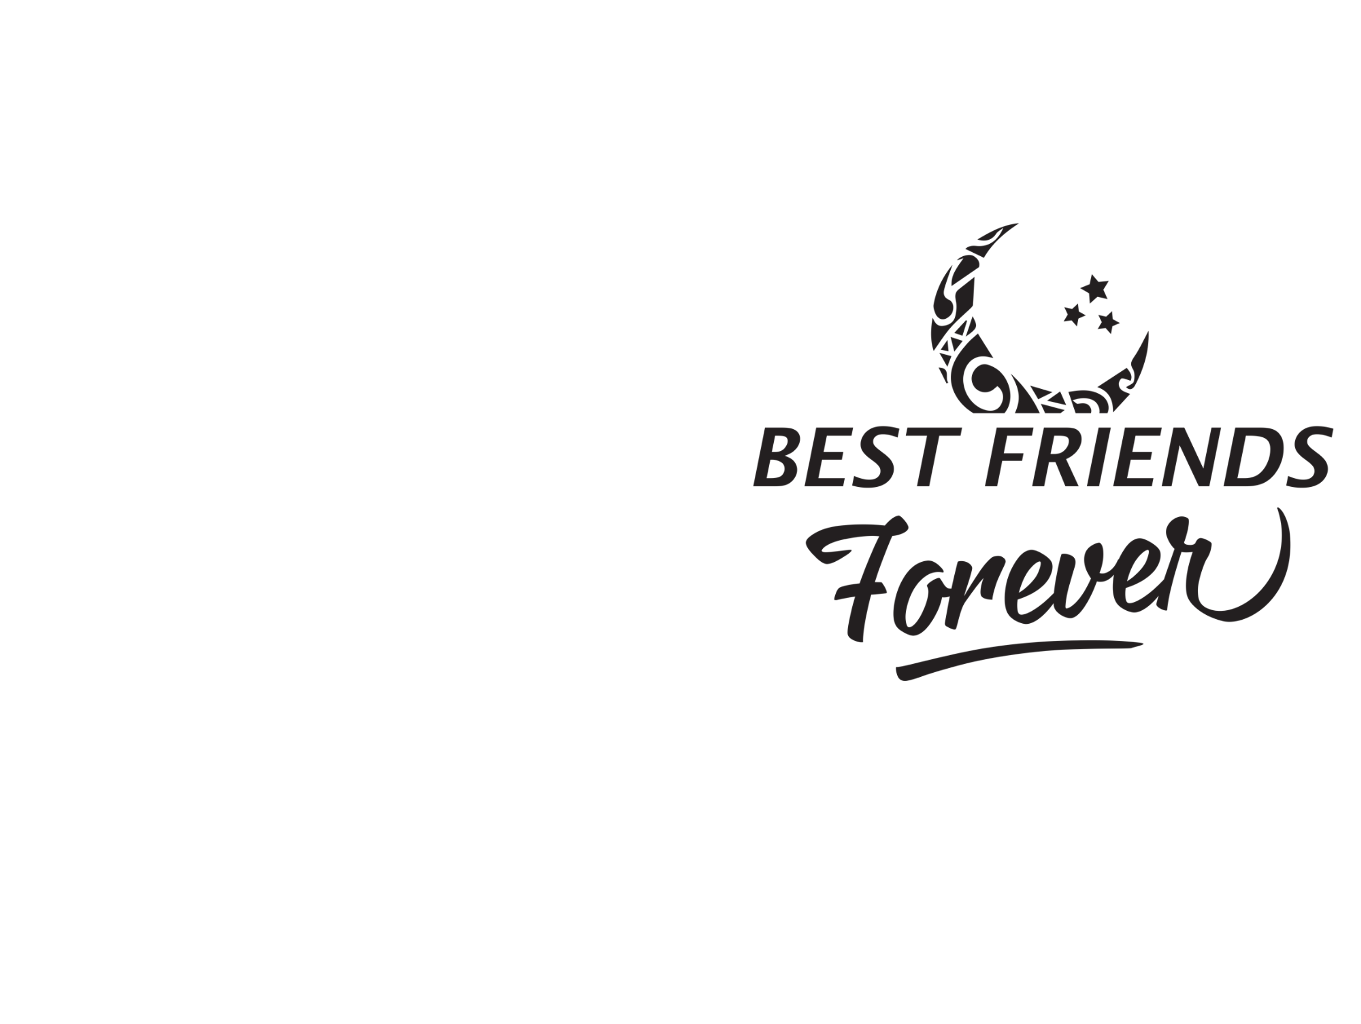 Bestfriends forever text sticker. Best friends png picture royalty free download